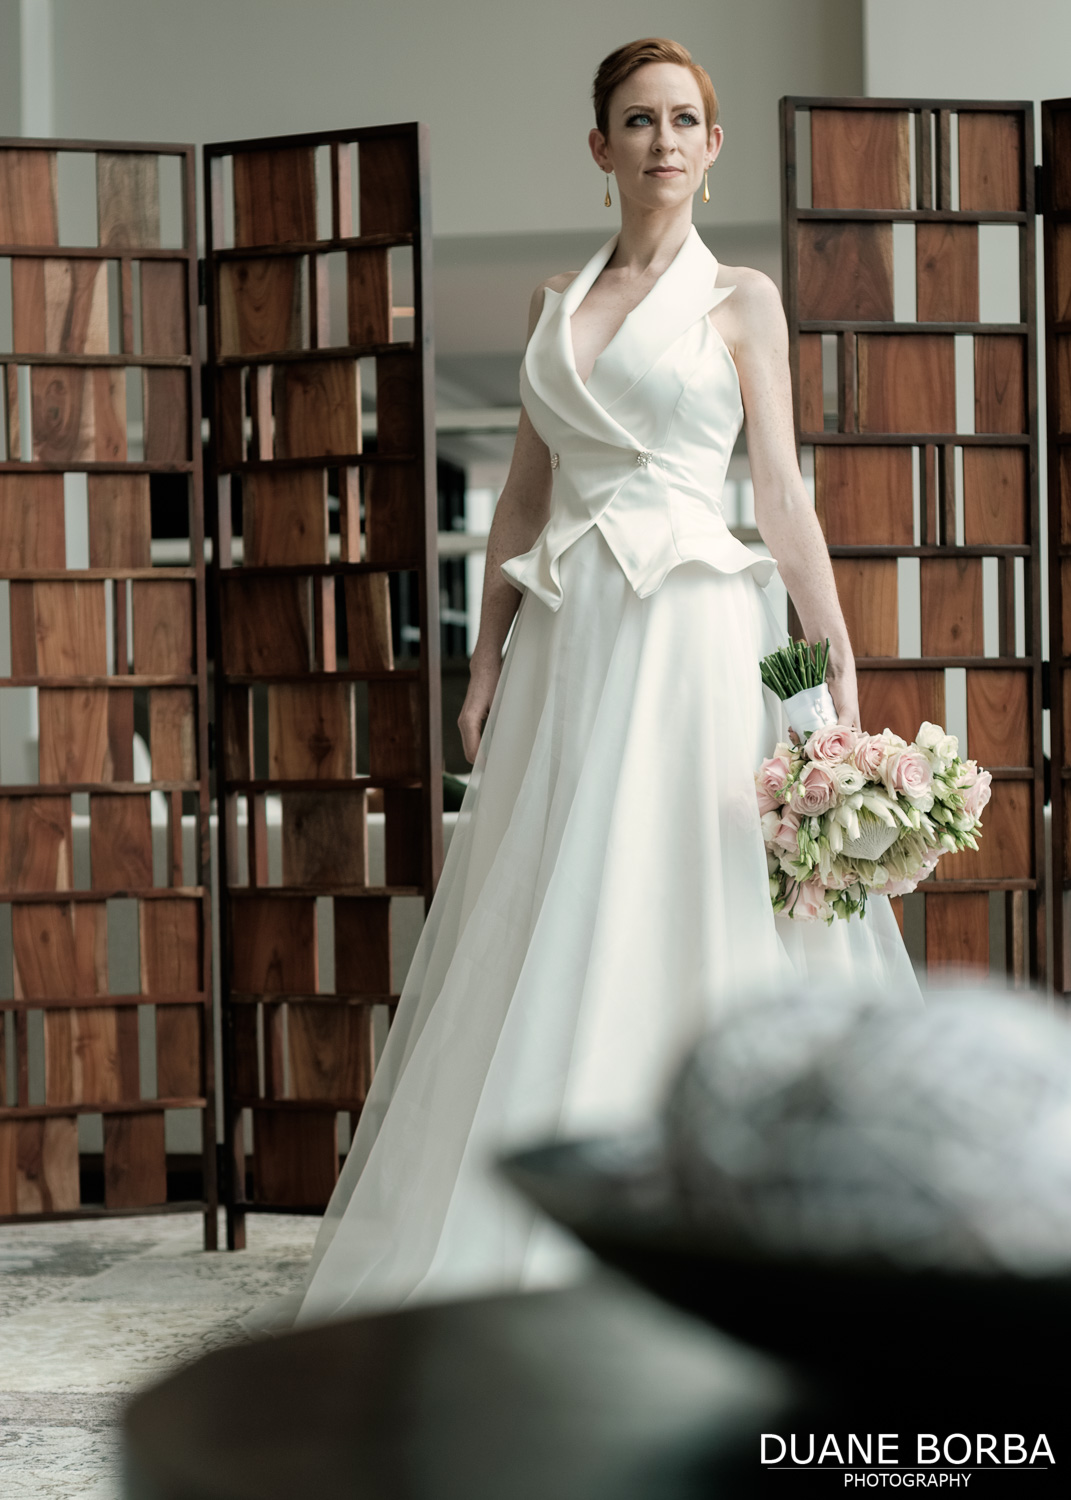 Bride posing with wedding gown and bouquet